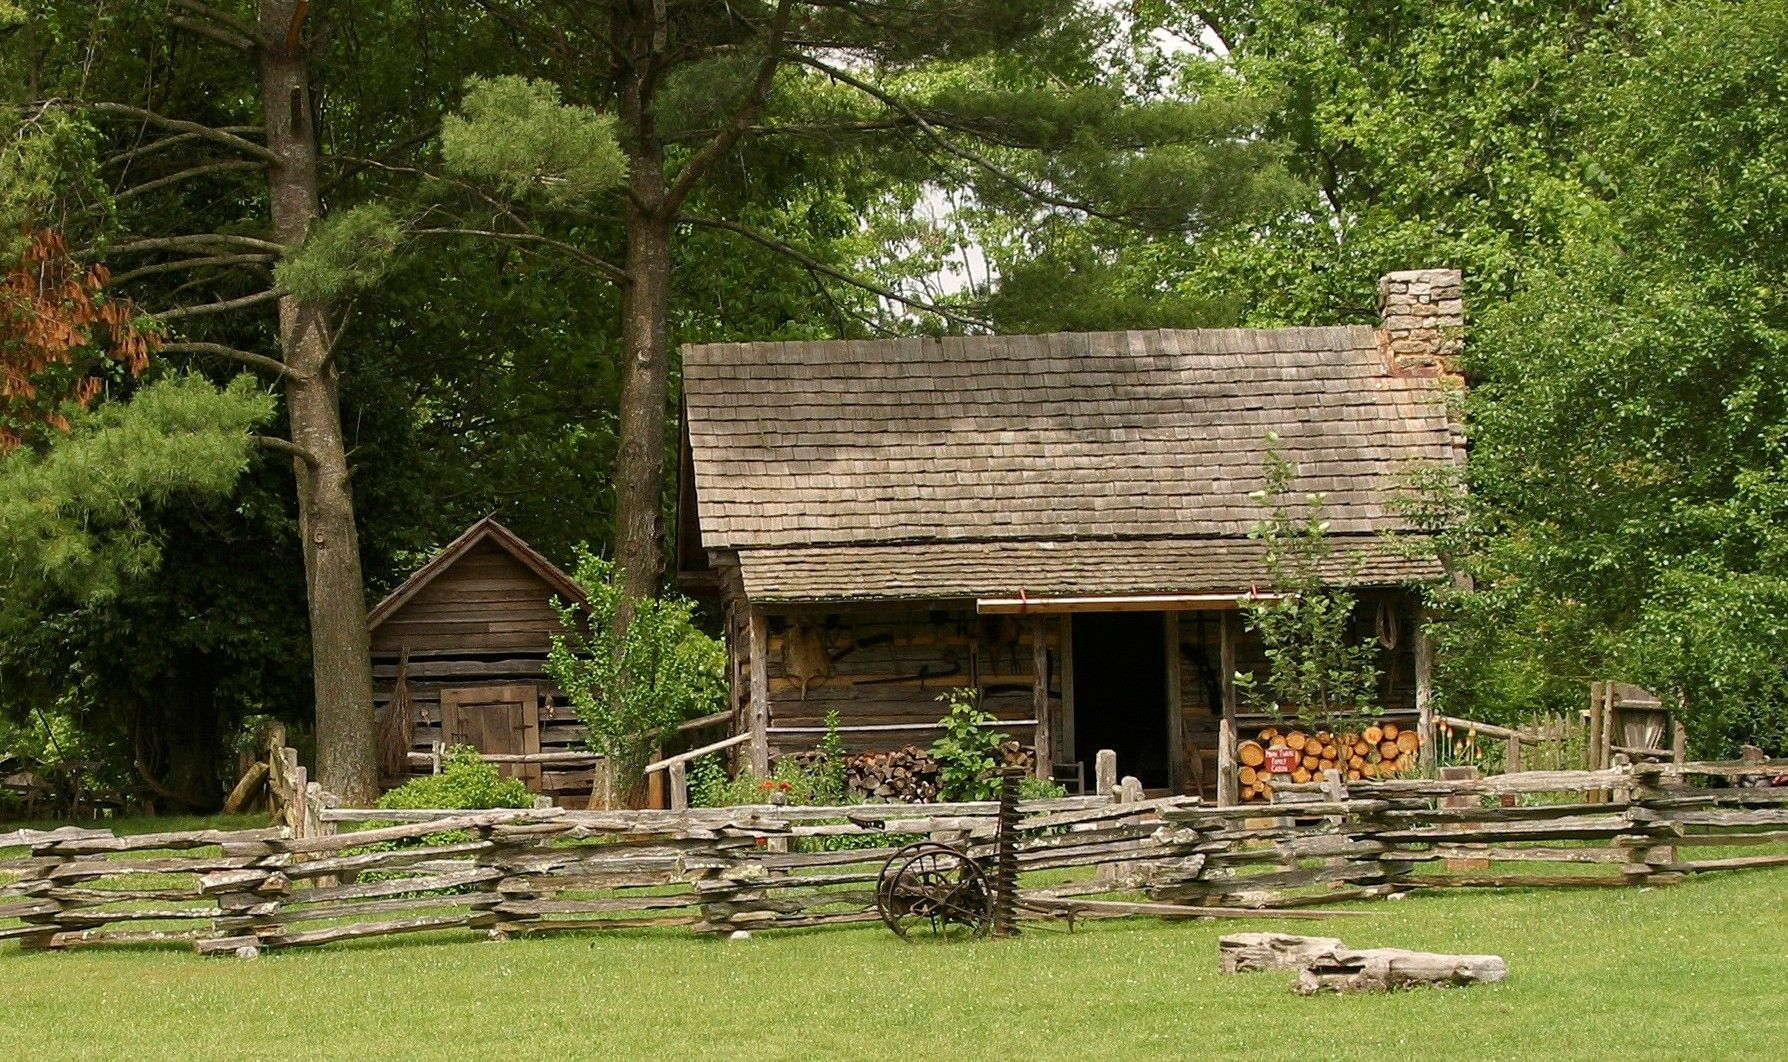 Museum Of Appalachia Is A Living History Museum Of Pioneer